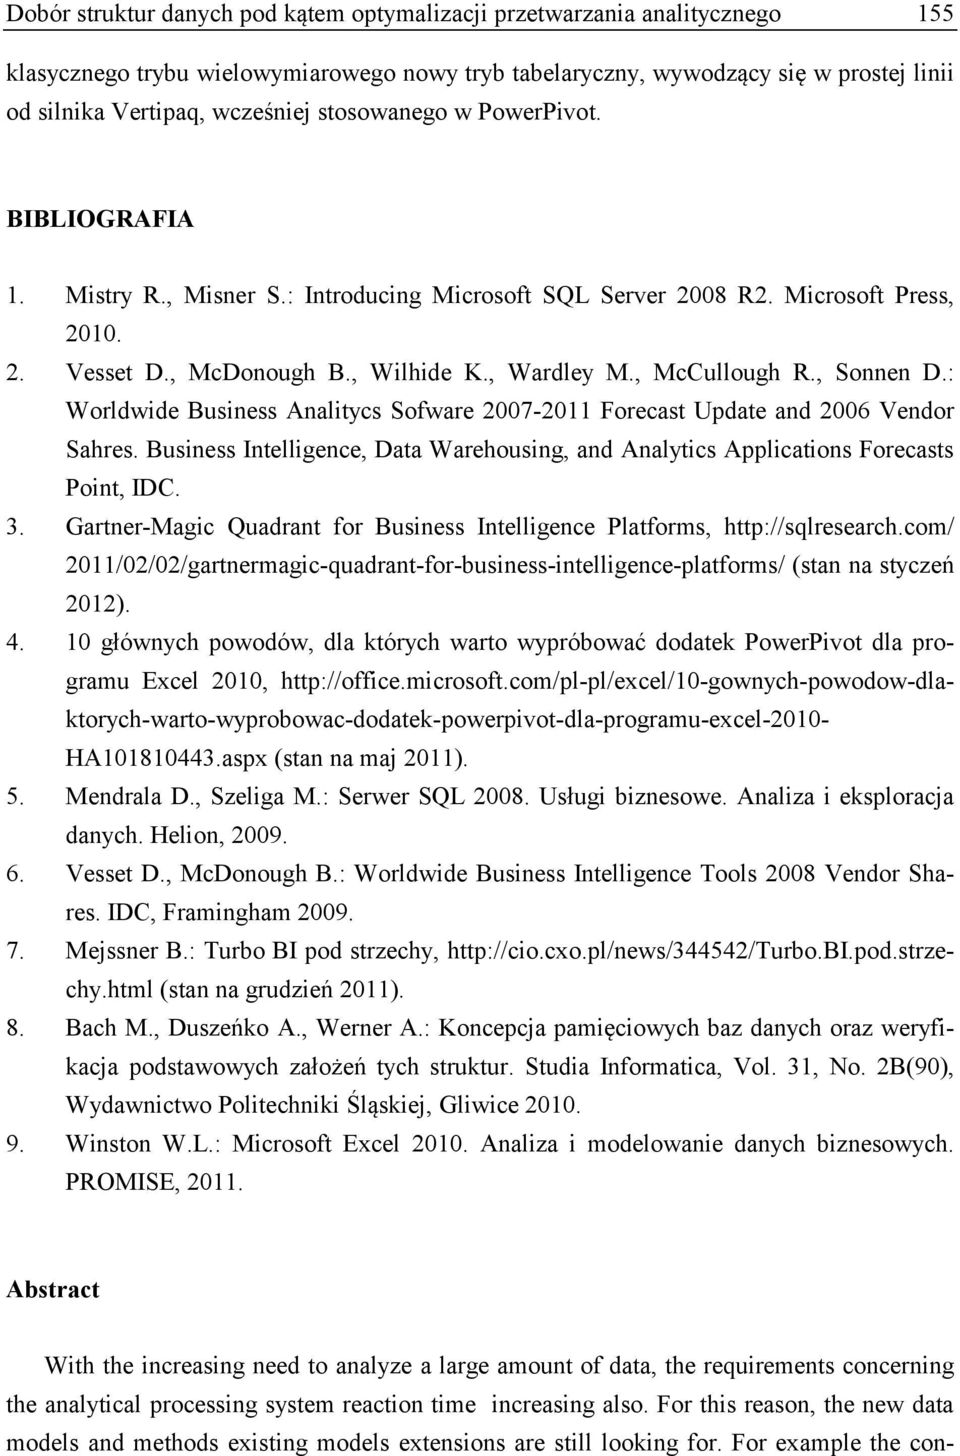 , Sonnen D.: Worldwide Business Analitycs Sofware 2007-2011 Forecast Update and 2006 Vendor Sahres. Business Intelligence, Data Warehousing, and Analytics Applications Forecasts Point, IDC. 3.